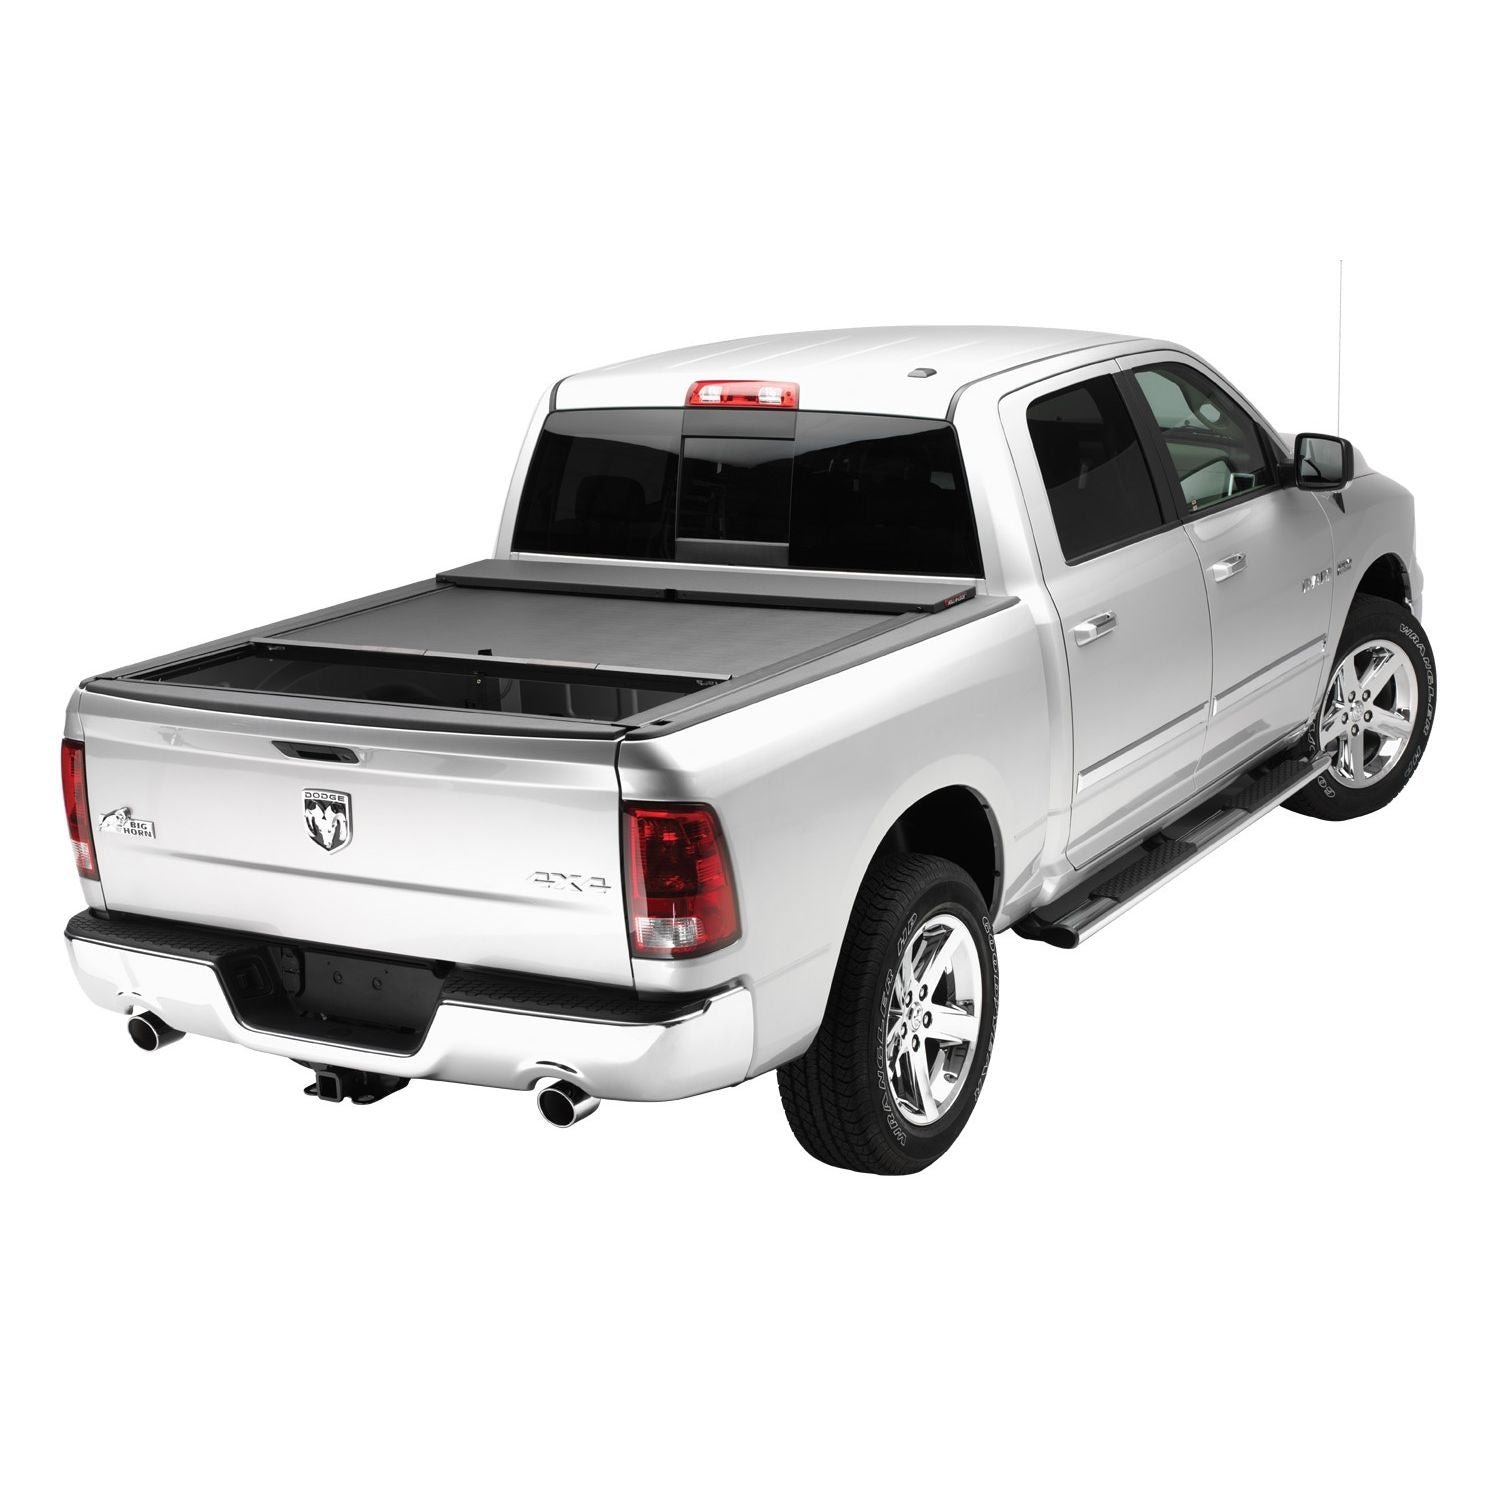 Roll-N-Lock LG448M Locking Retractable M-Series Truck Bed Tonneau Cover for 2019 Ram 1500 Classic; 2010-2018 Dodge Ram 1500/2500/3500 | Fits 6.4 Ft. Bed (Excludes models w/RamBox)